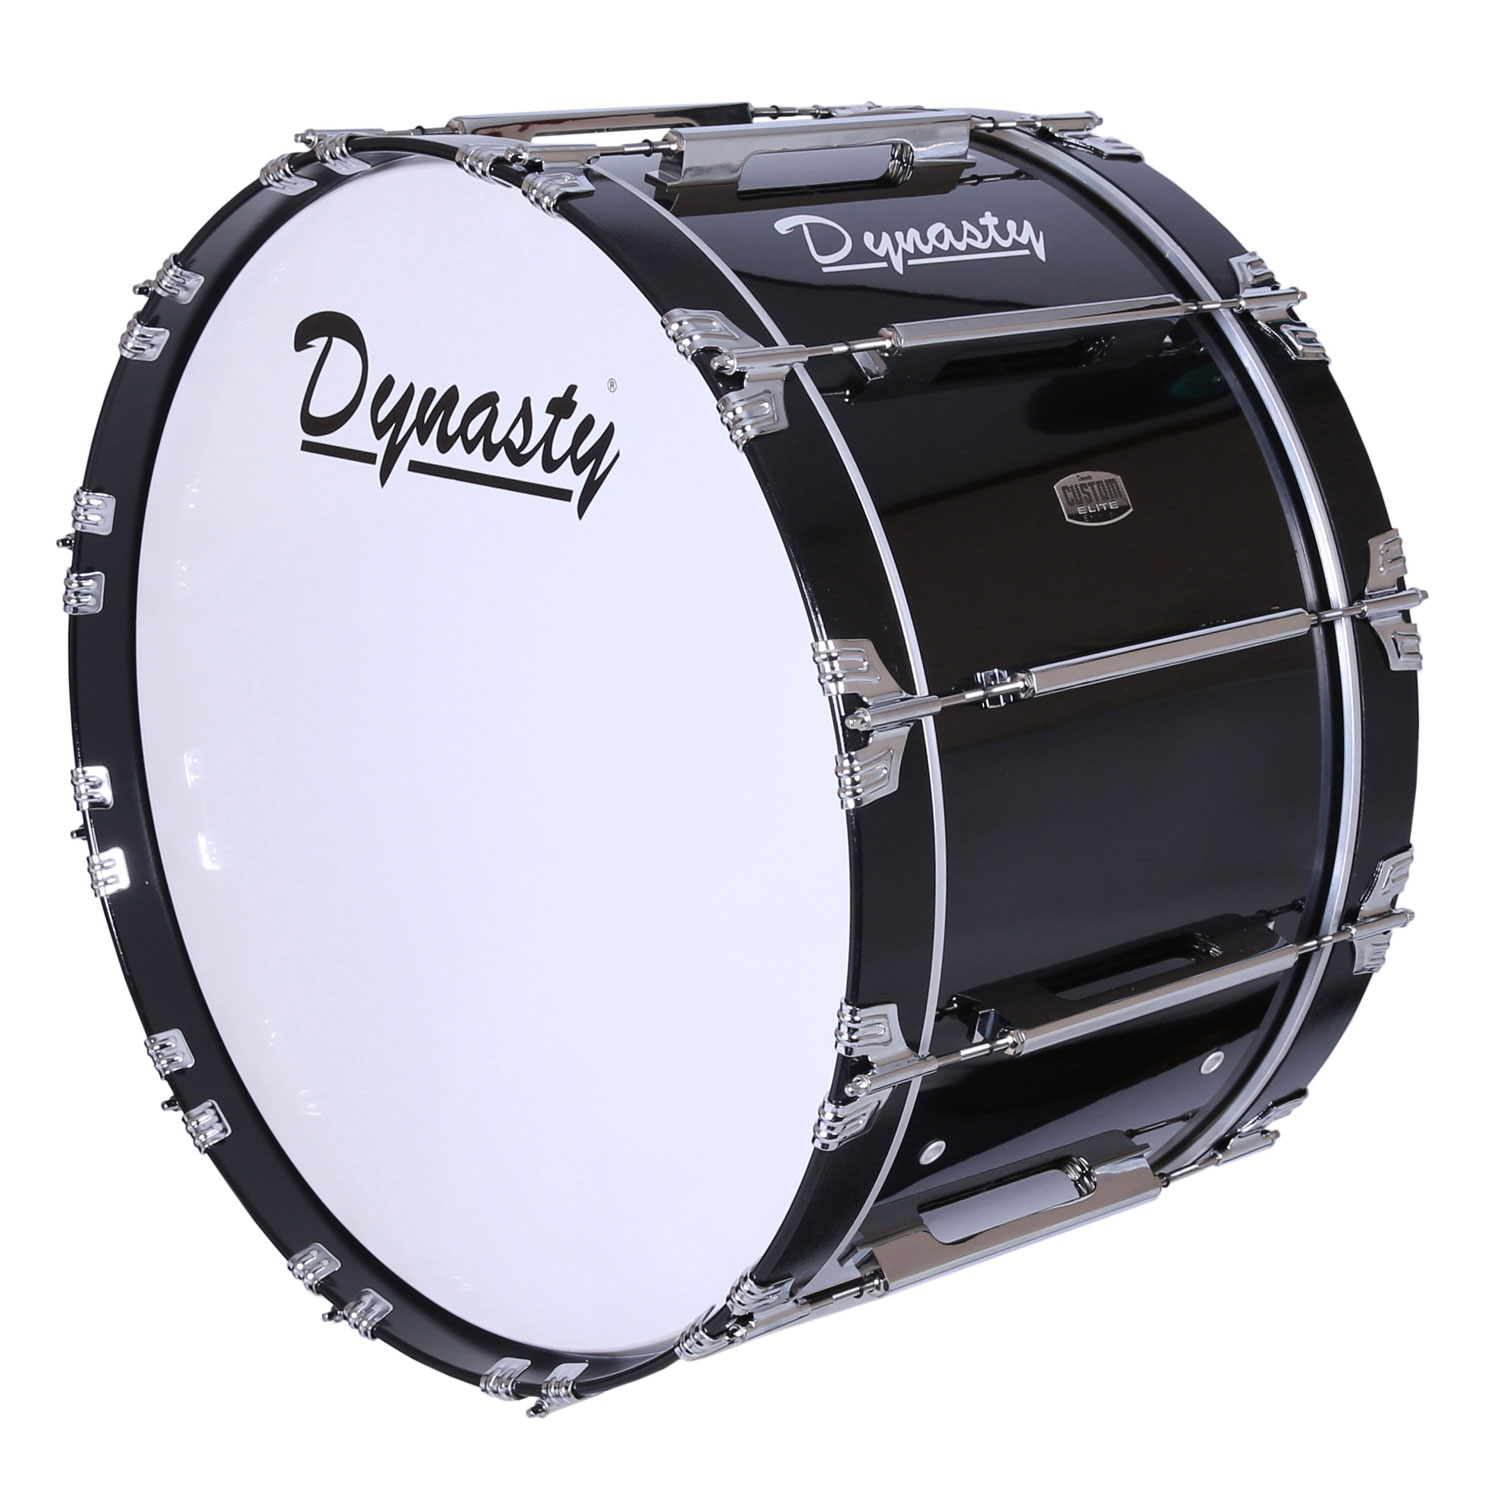 "Dynasty 32"" Custom Elite Marching Bass Drum in Black/Chrome"